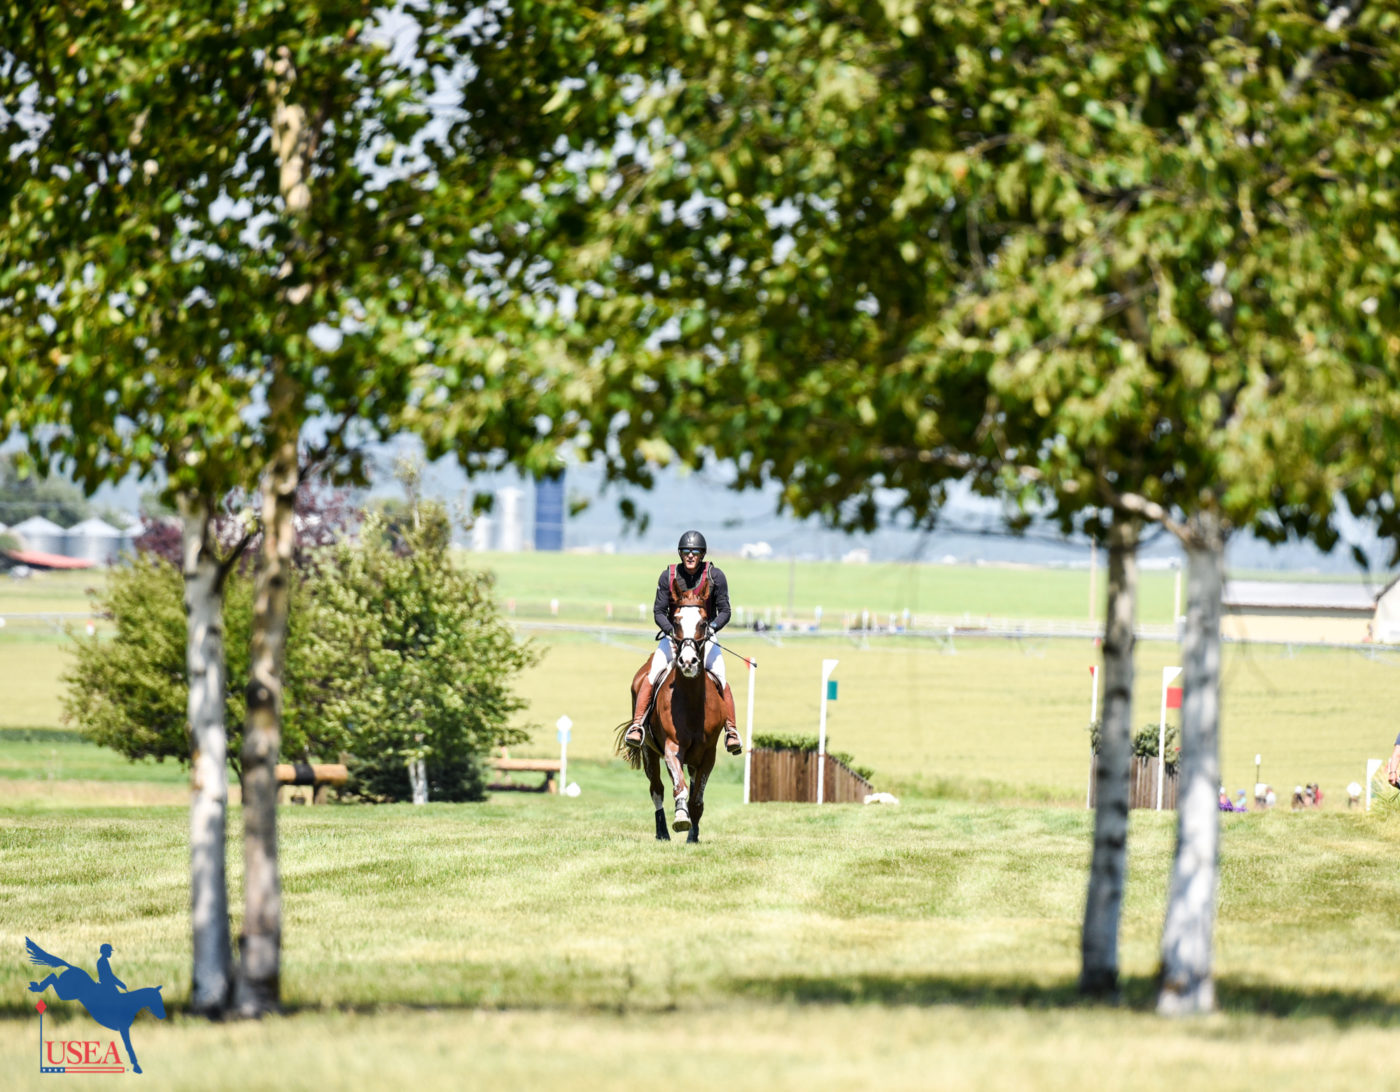 Galloping through Rebecca Farm framed by the trees. USEA/Leslie Mintz Photo.